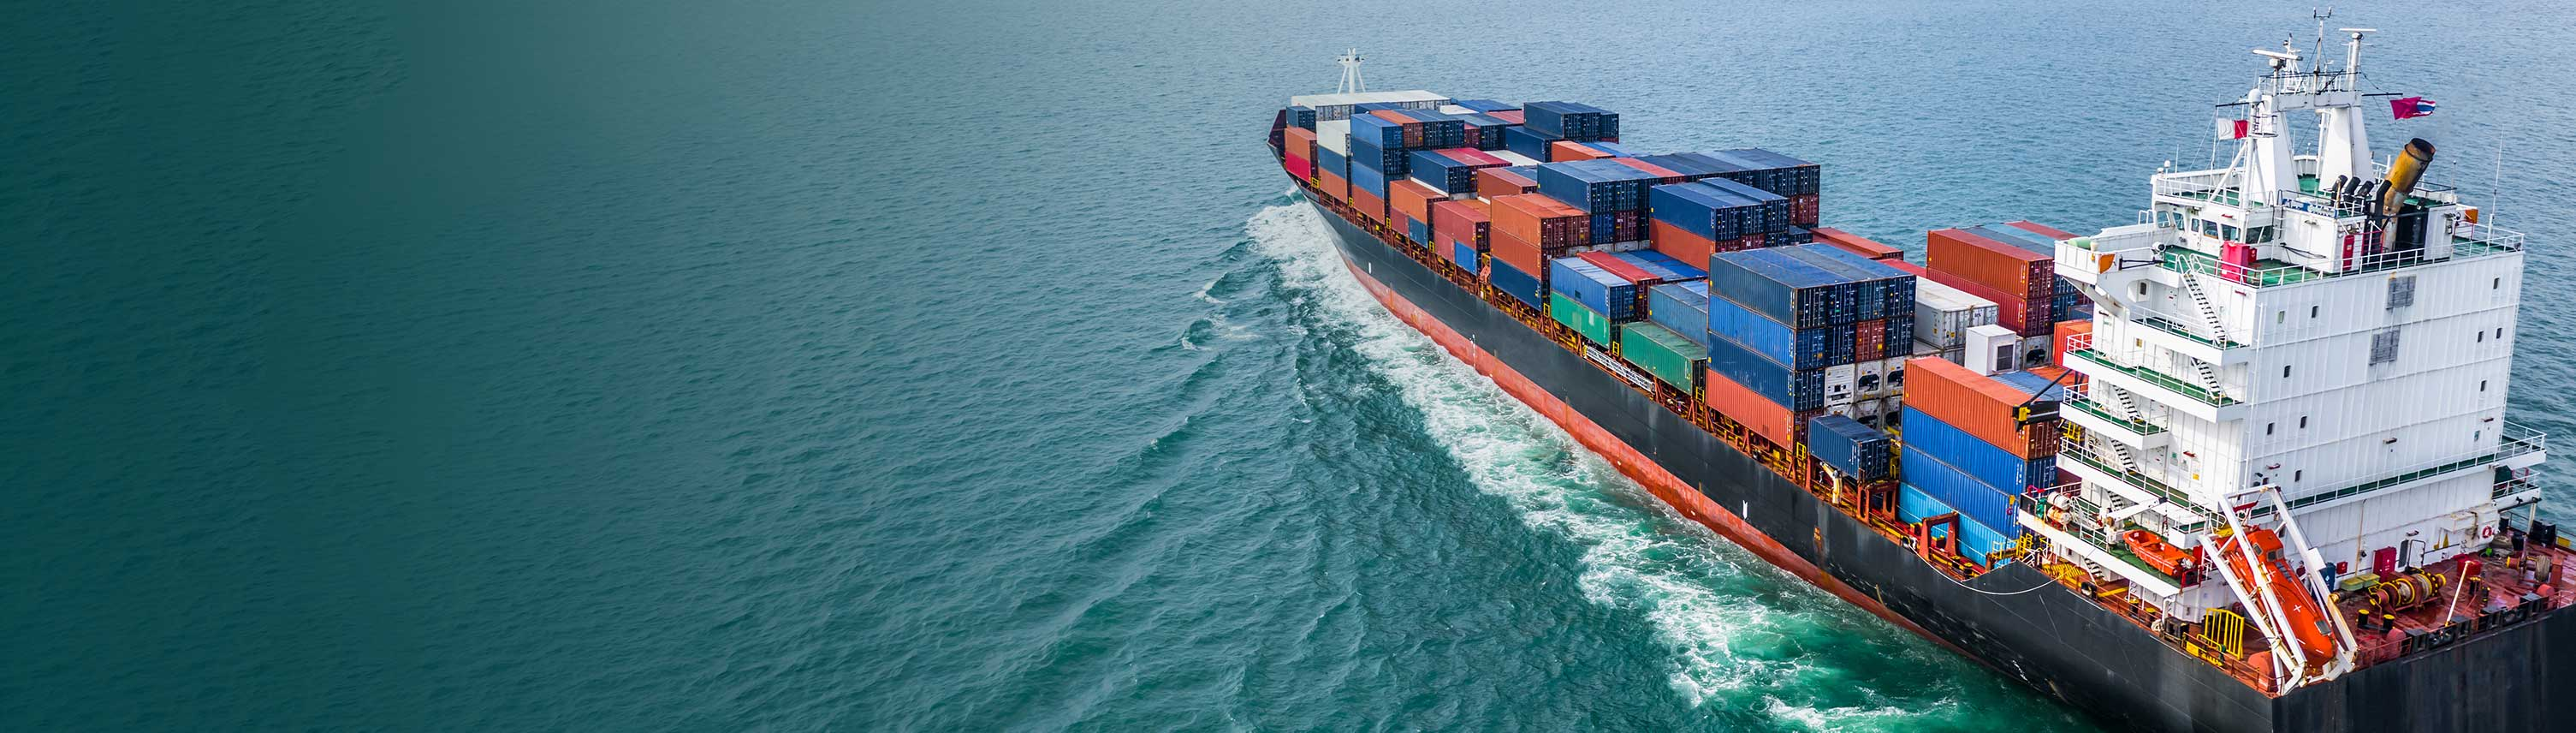 image of ocean container